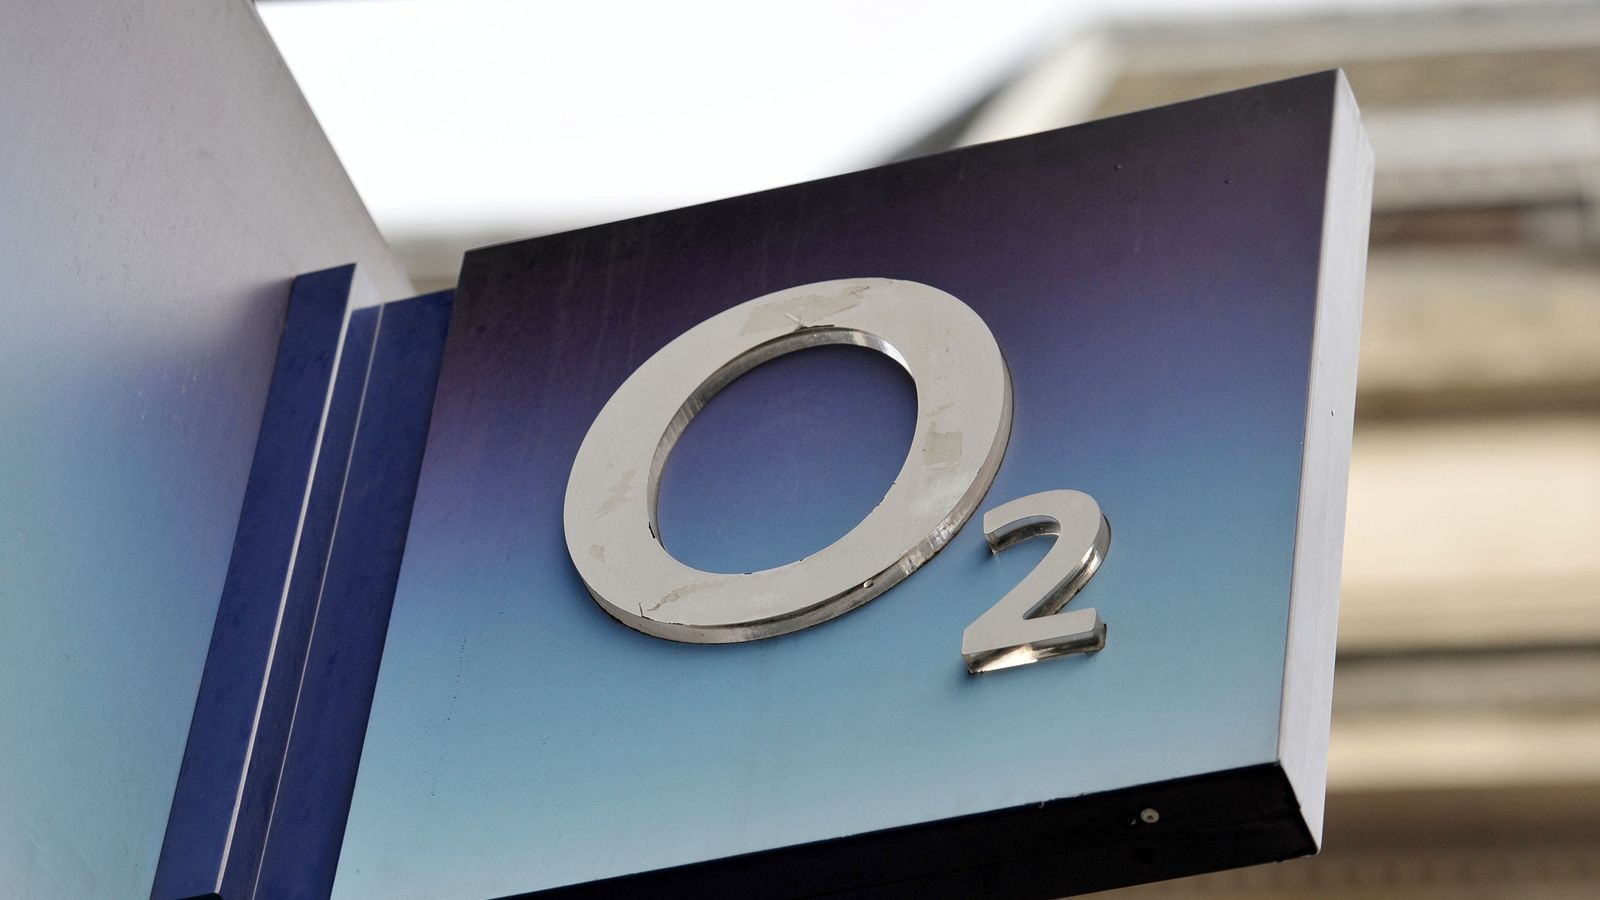 02 investigating as users say data services down